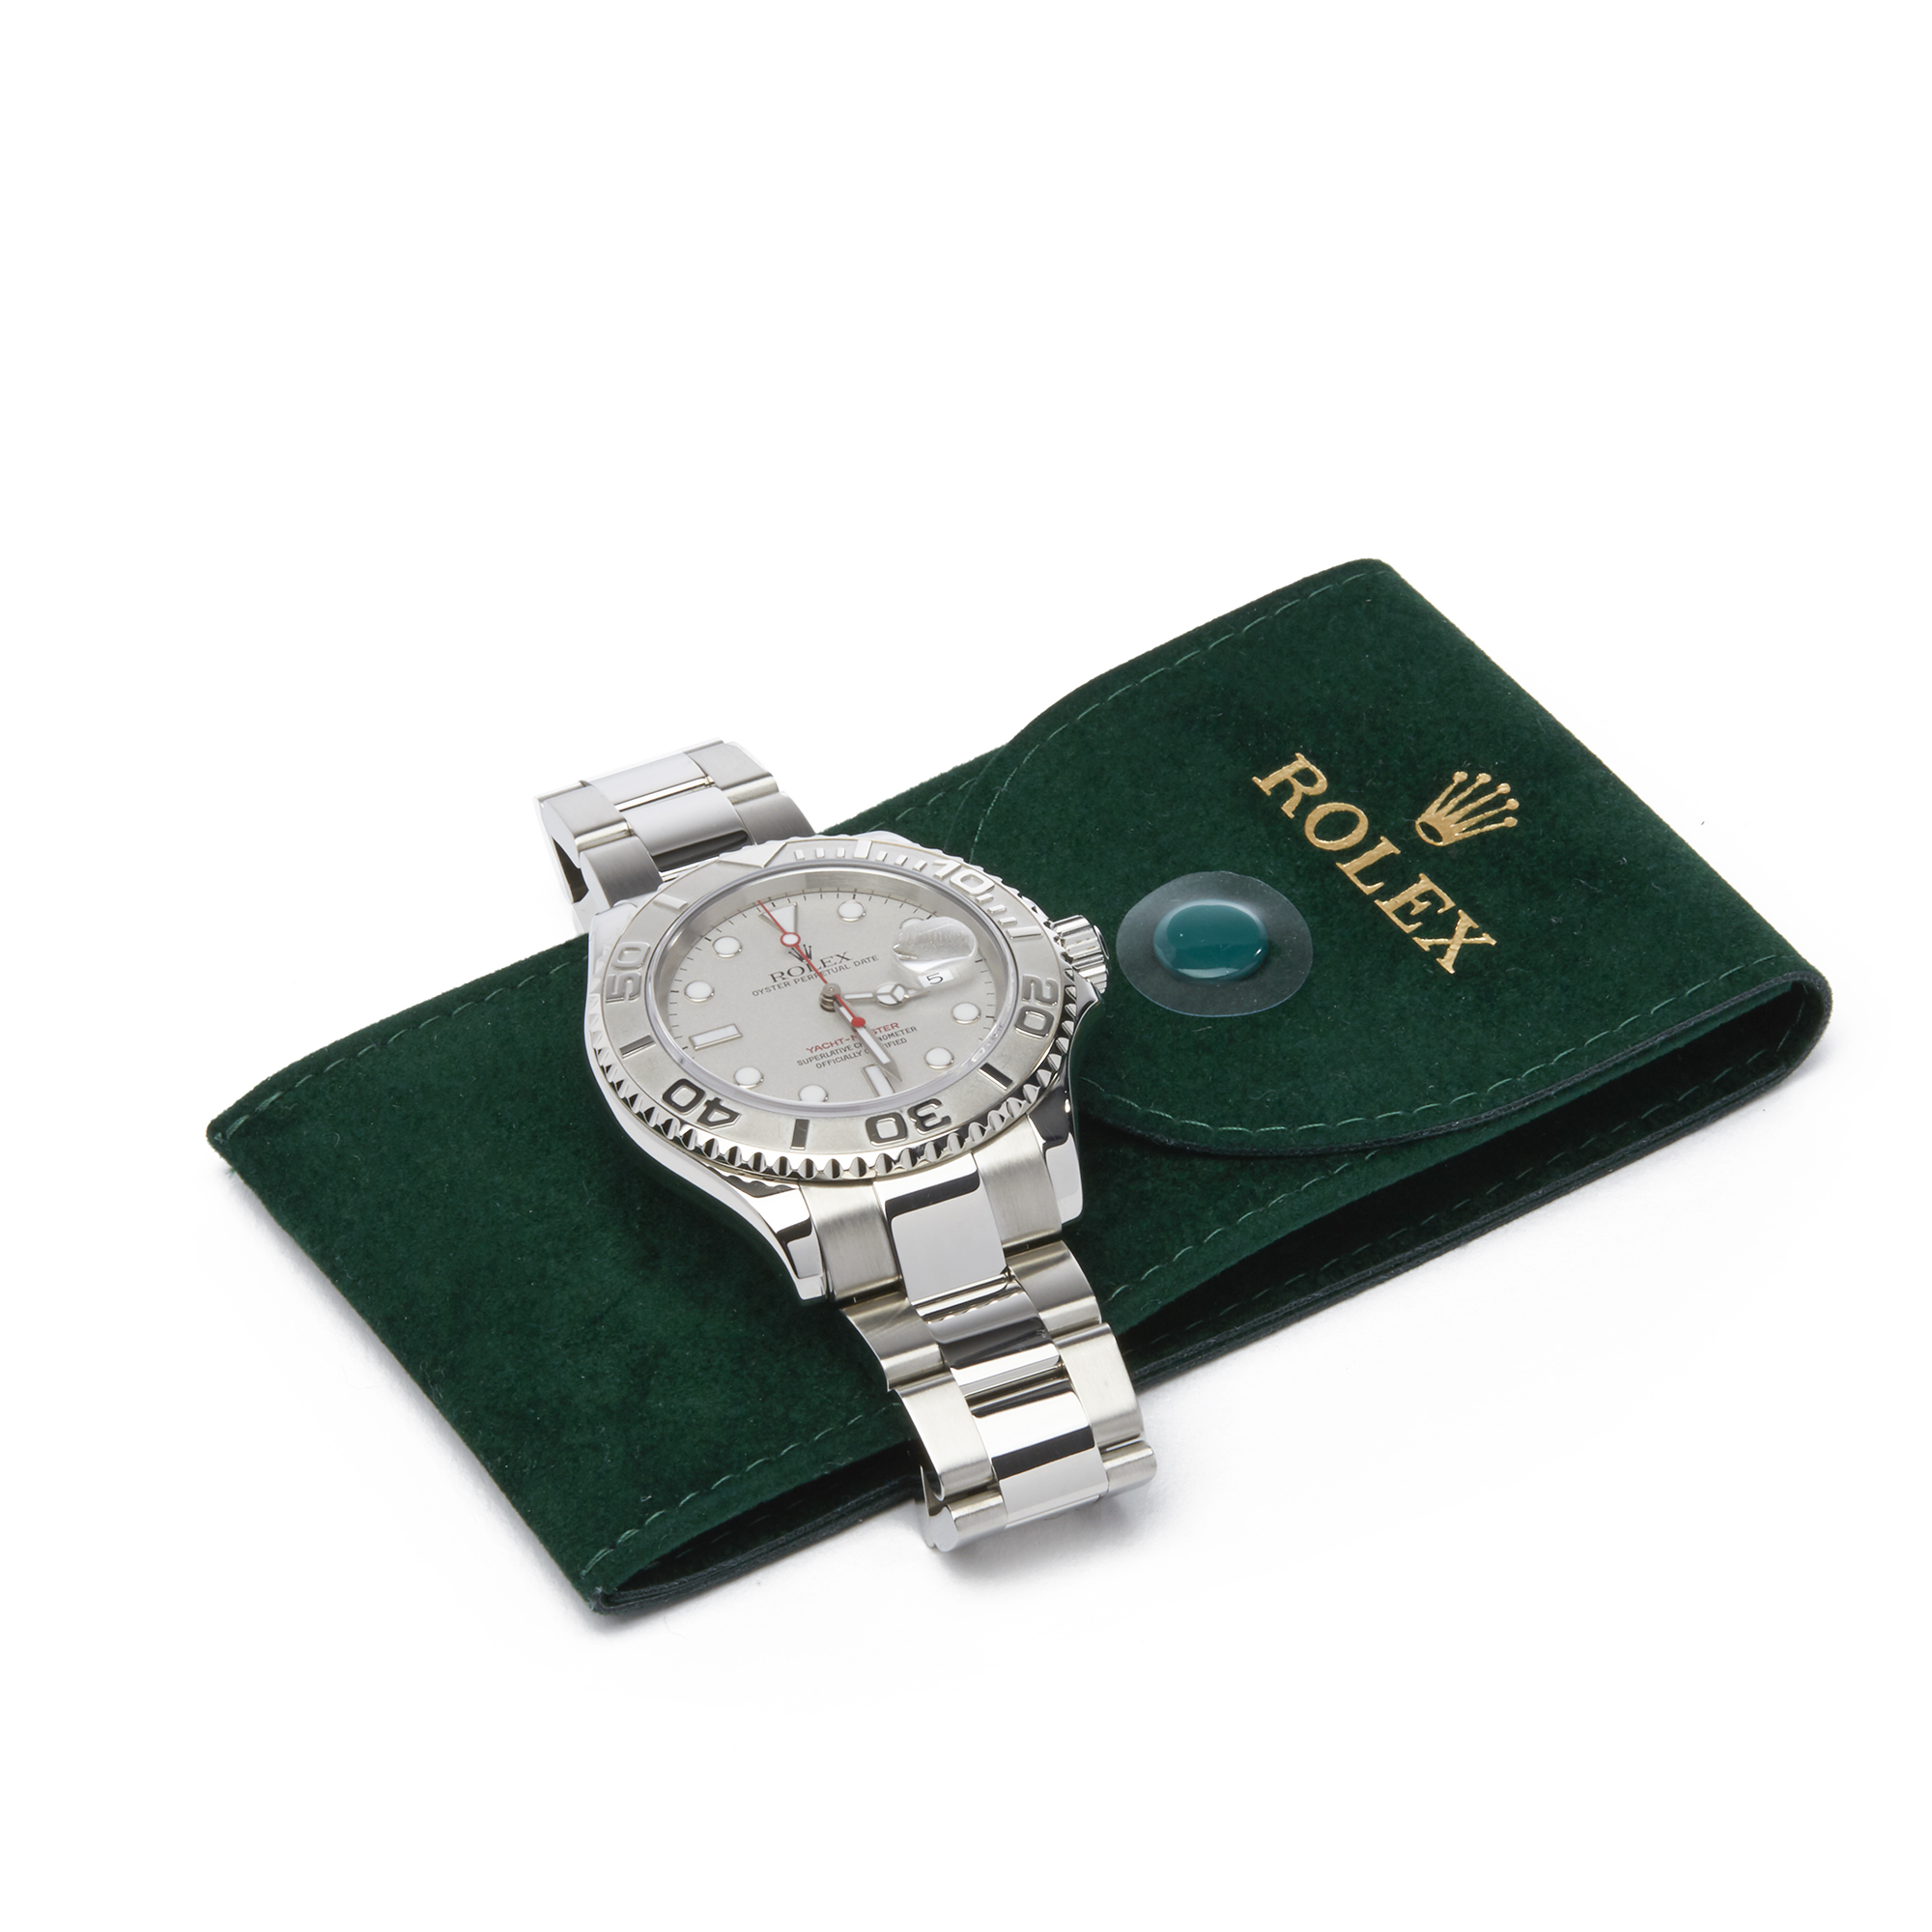 Rolex Yacht-Master 40 16622 Men's Stainless Steel Watch - Image 3 of 10